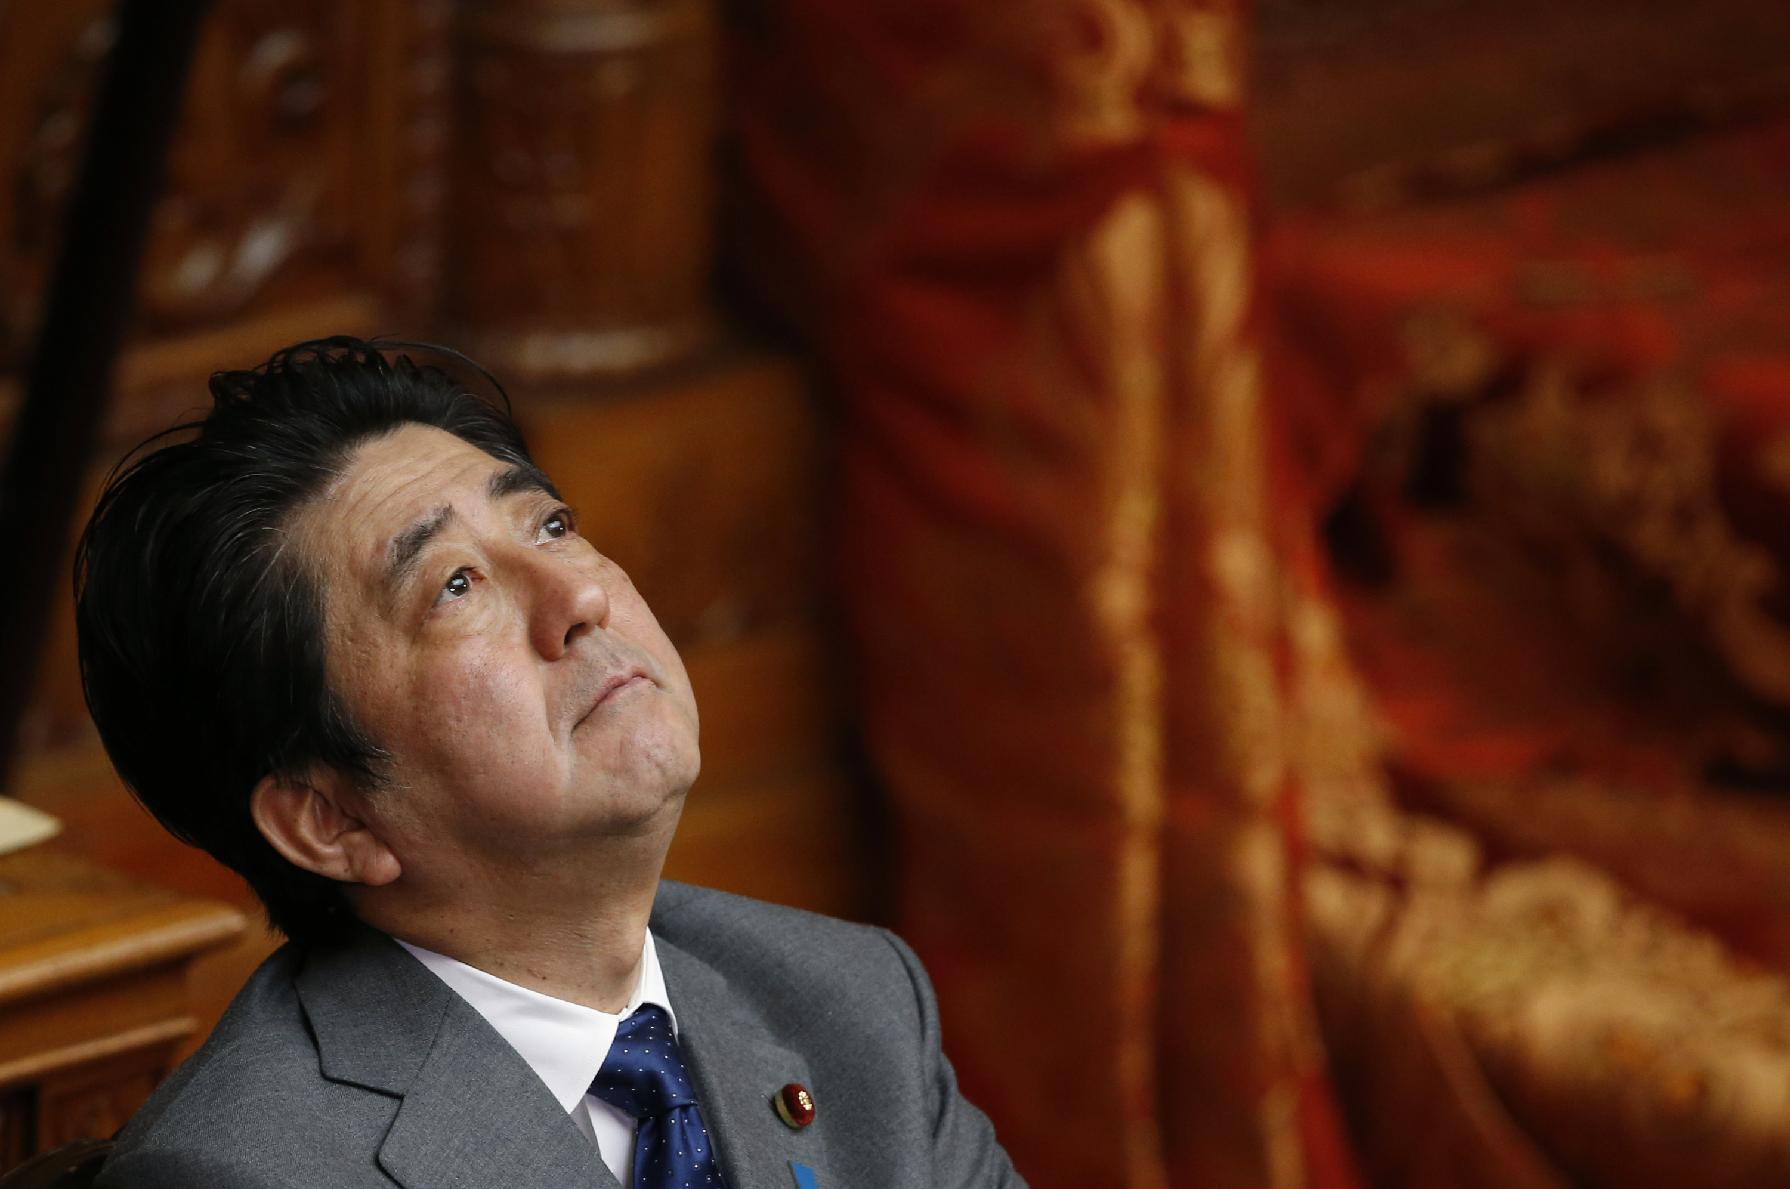 Analysis: The world's problems enter Japan's psyche, again